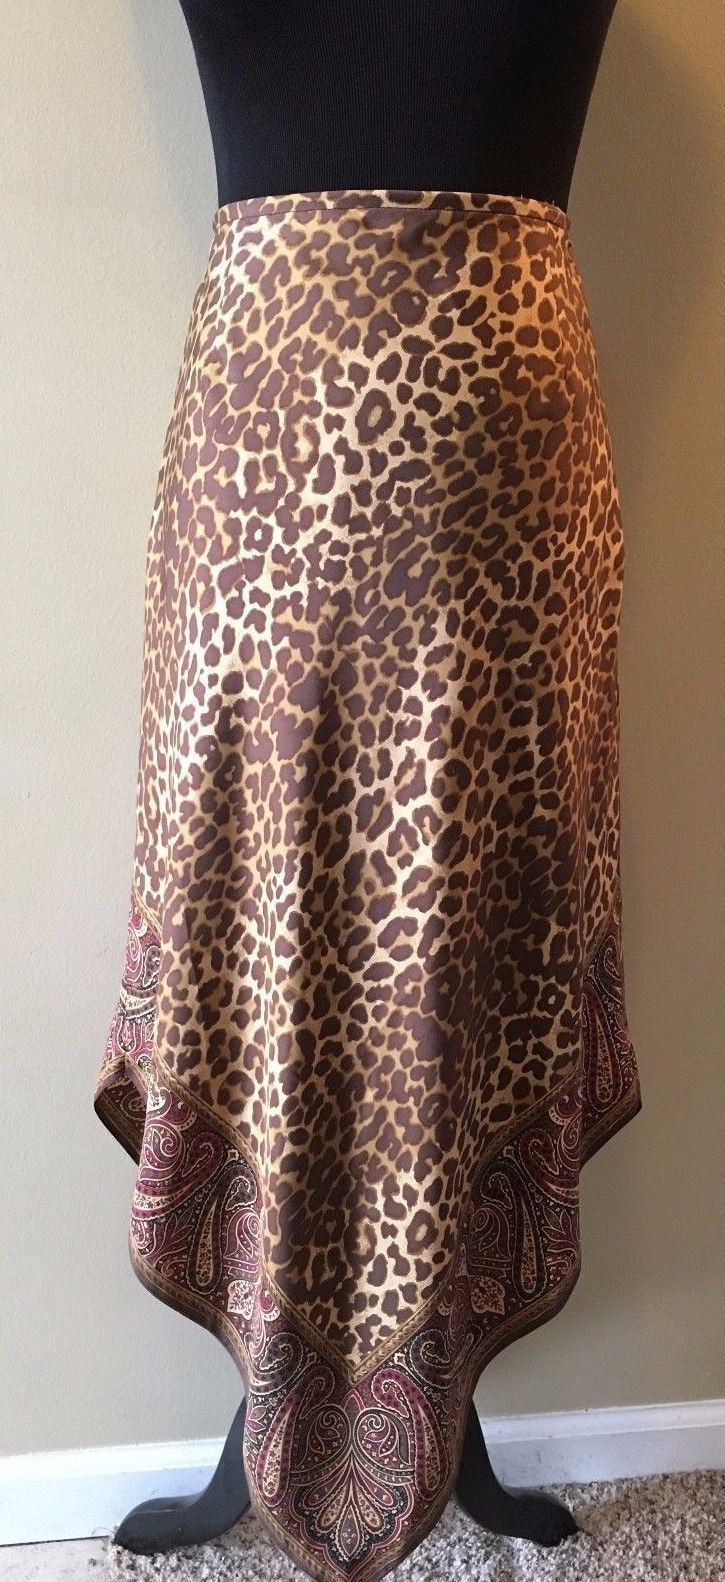 Primary image for GAP 100% Silk Brown Leopard Paisley Handkerchief Hem Skirt size 6 NWT $68 SK1